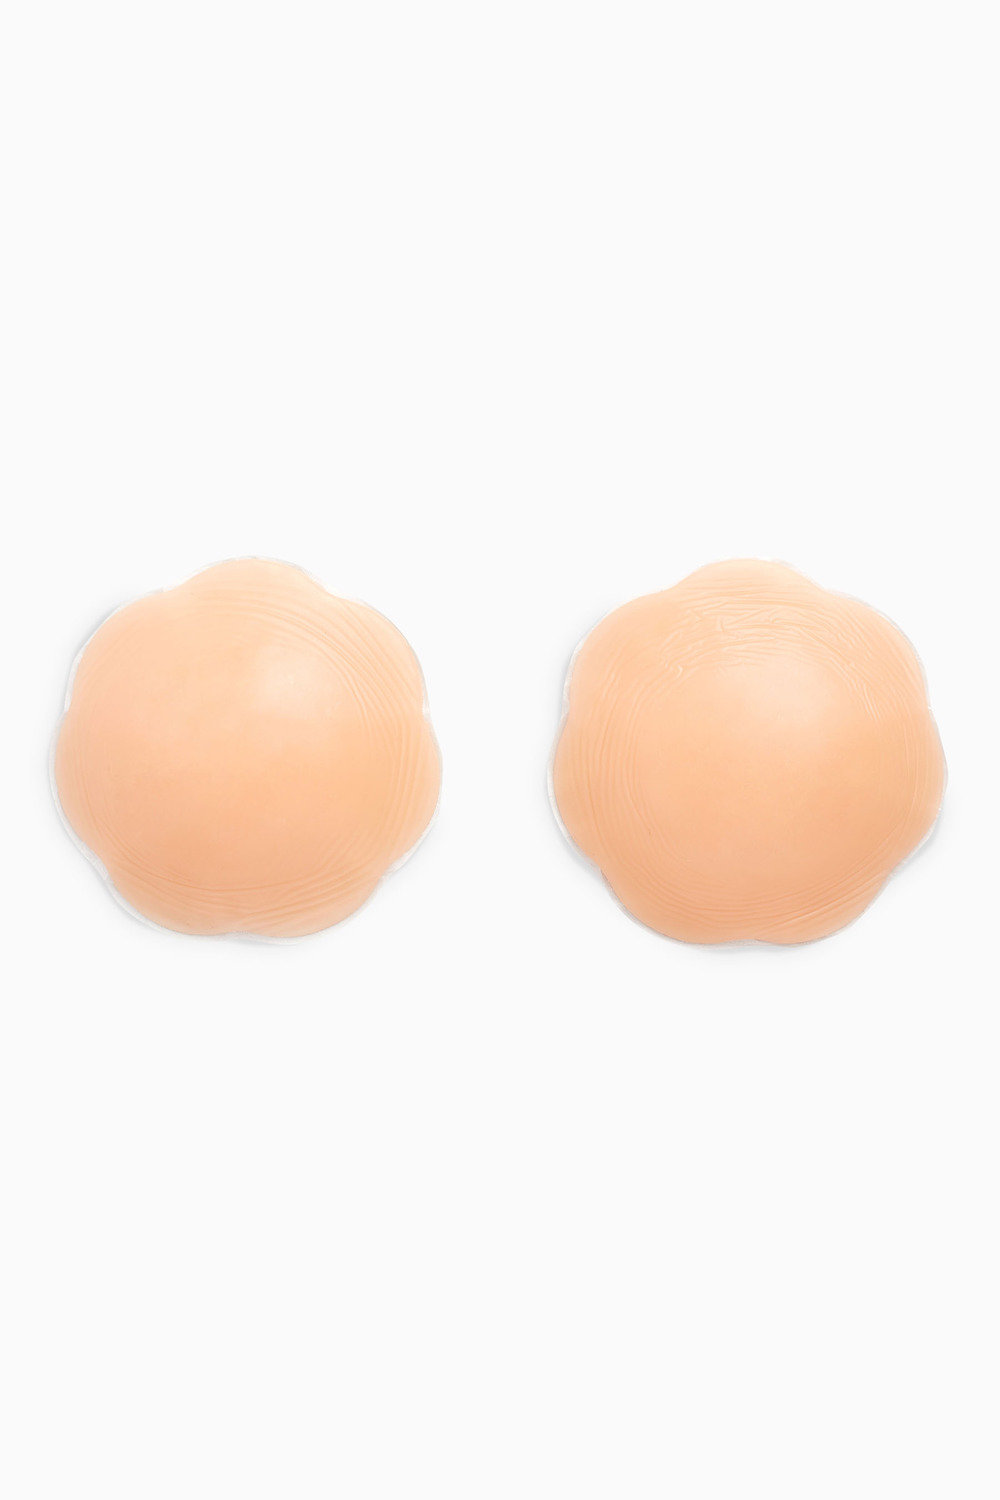 7bd1126c619 Next DD+ Silicone Nipple Covers Online